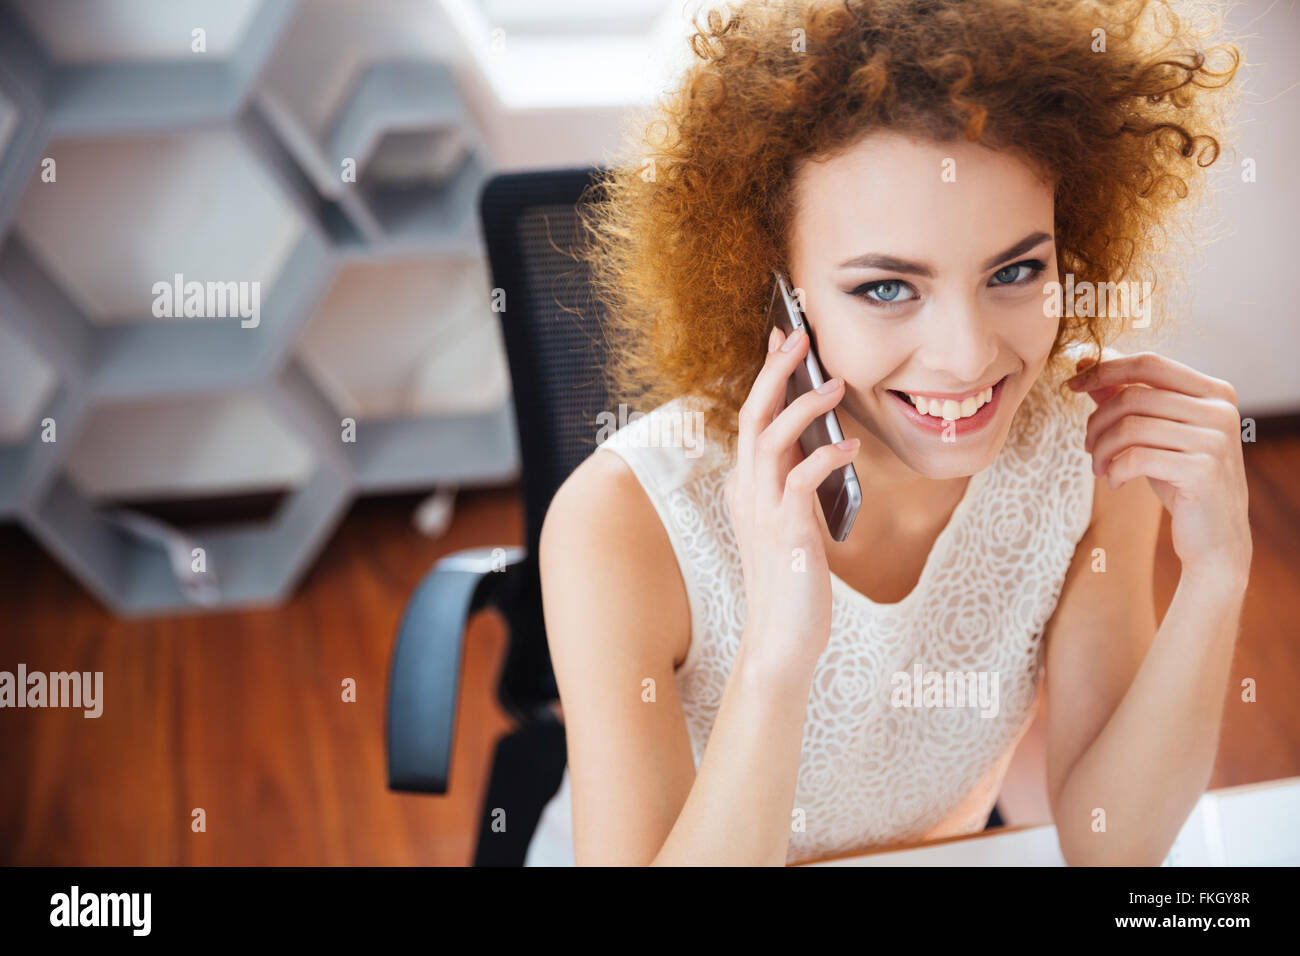 Smiling beautiful business woman with curly red hair talking on mobile phone on workplace in the office - Stock Image